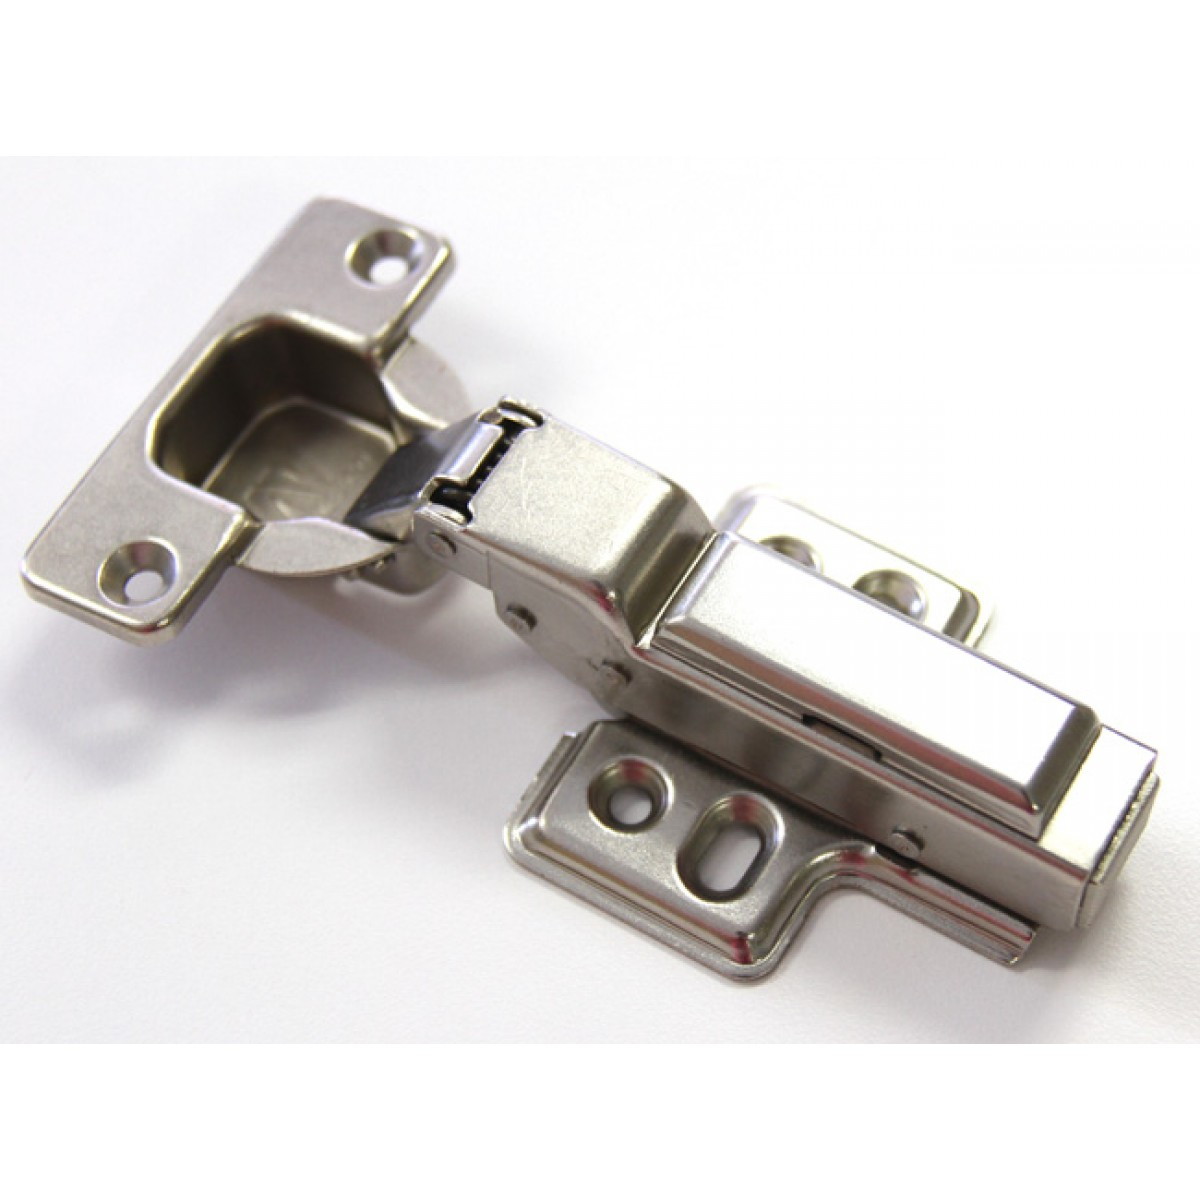 Hydraulic Hinges For Kitchen Cabinets European Cabinet Concealed Hydraulic Soft Close Half